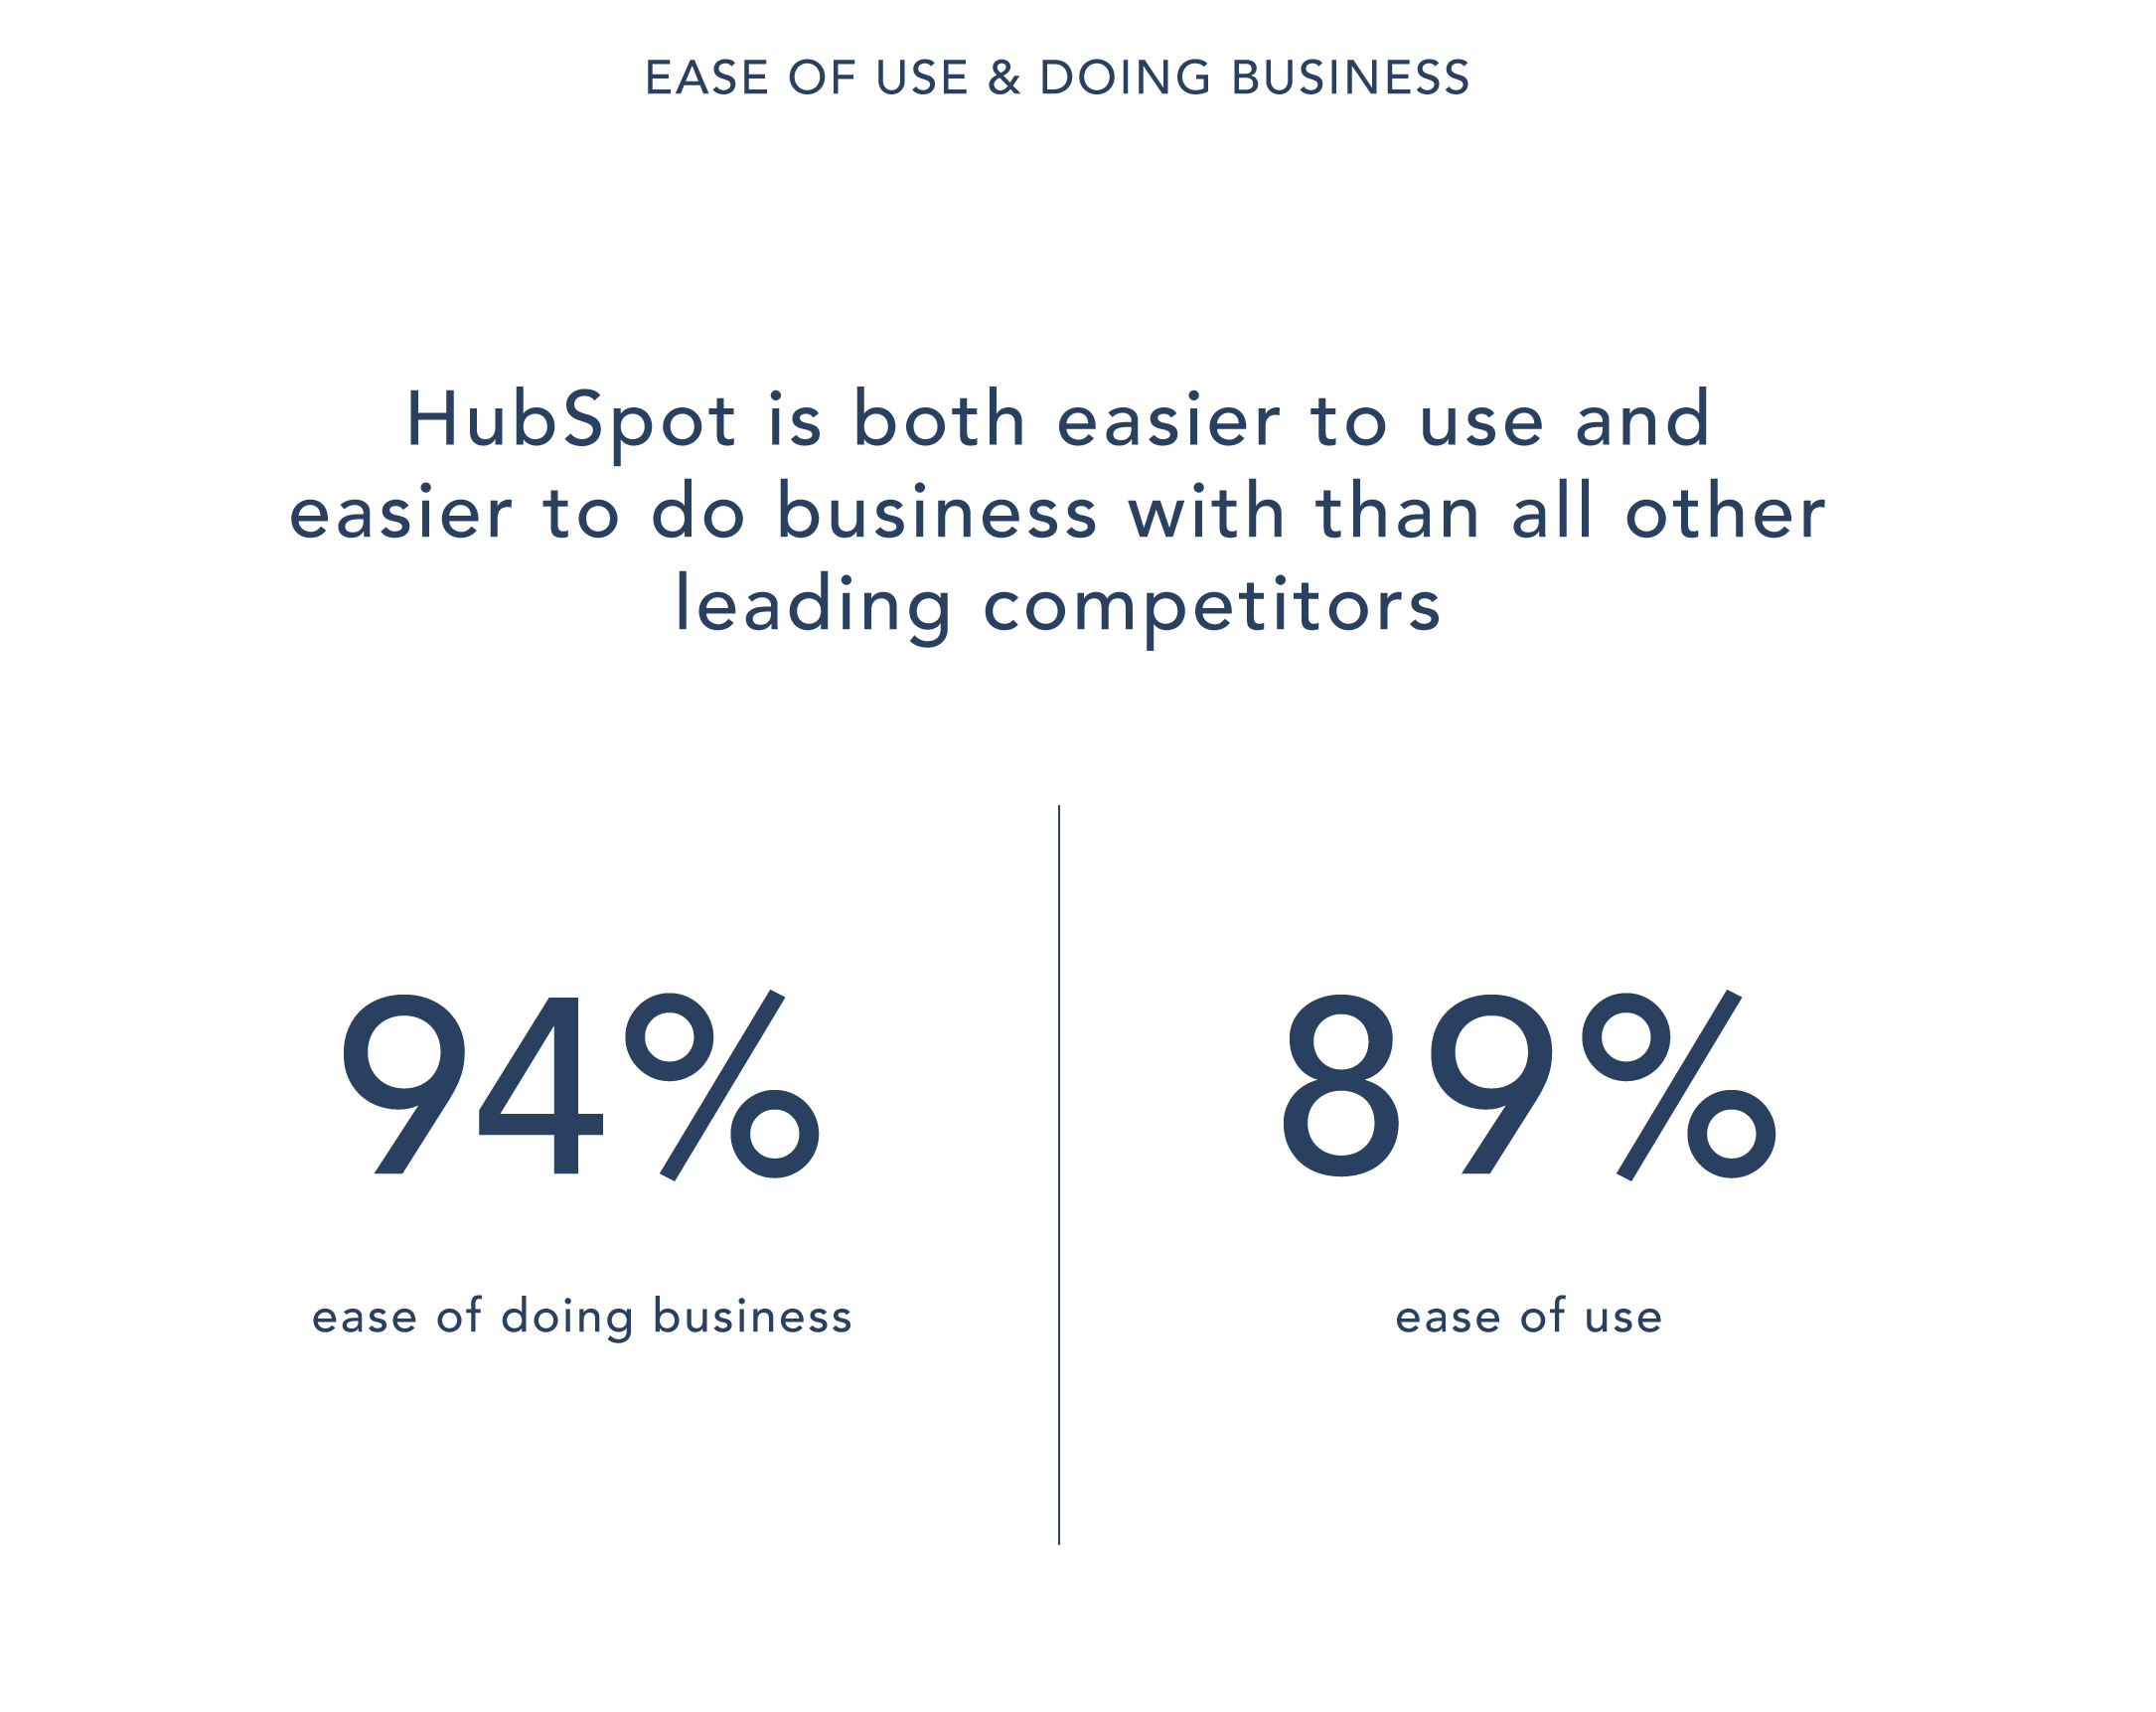 Ease of use and doing business HubSpot statistical image